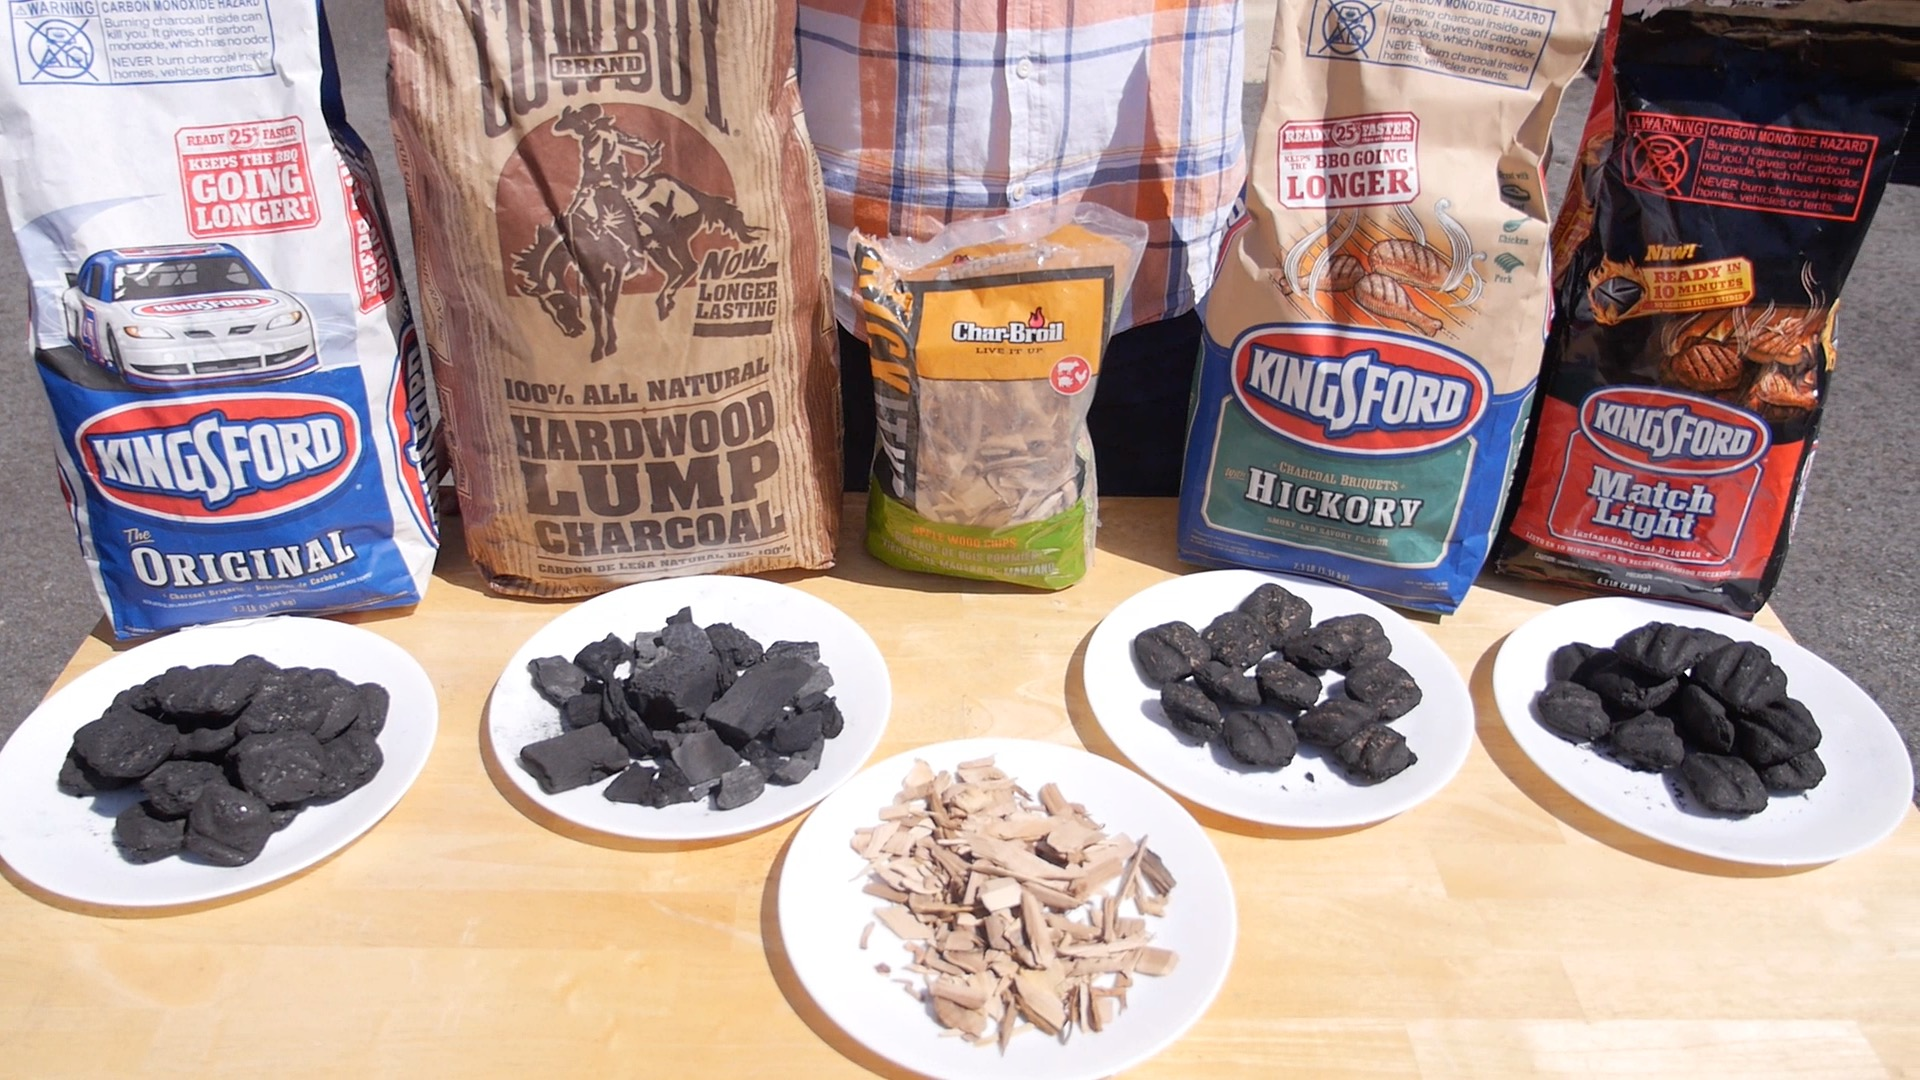 What type of charcoal is best for grilling?